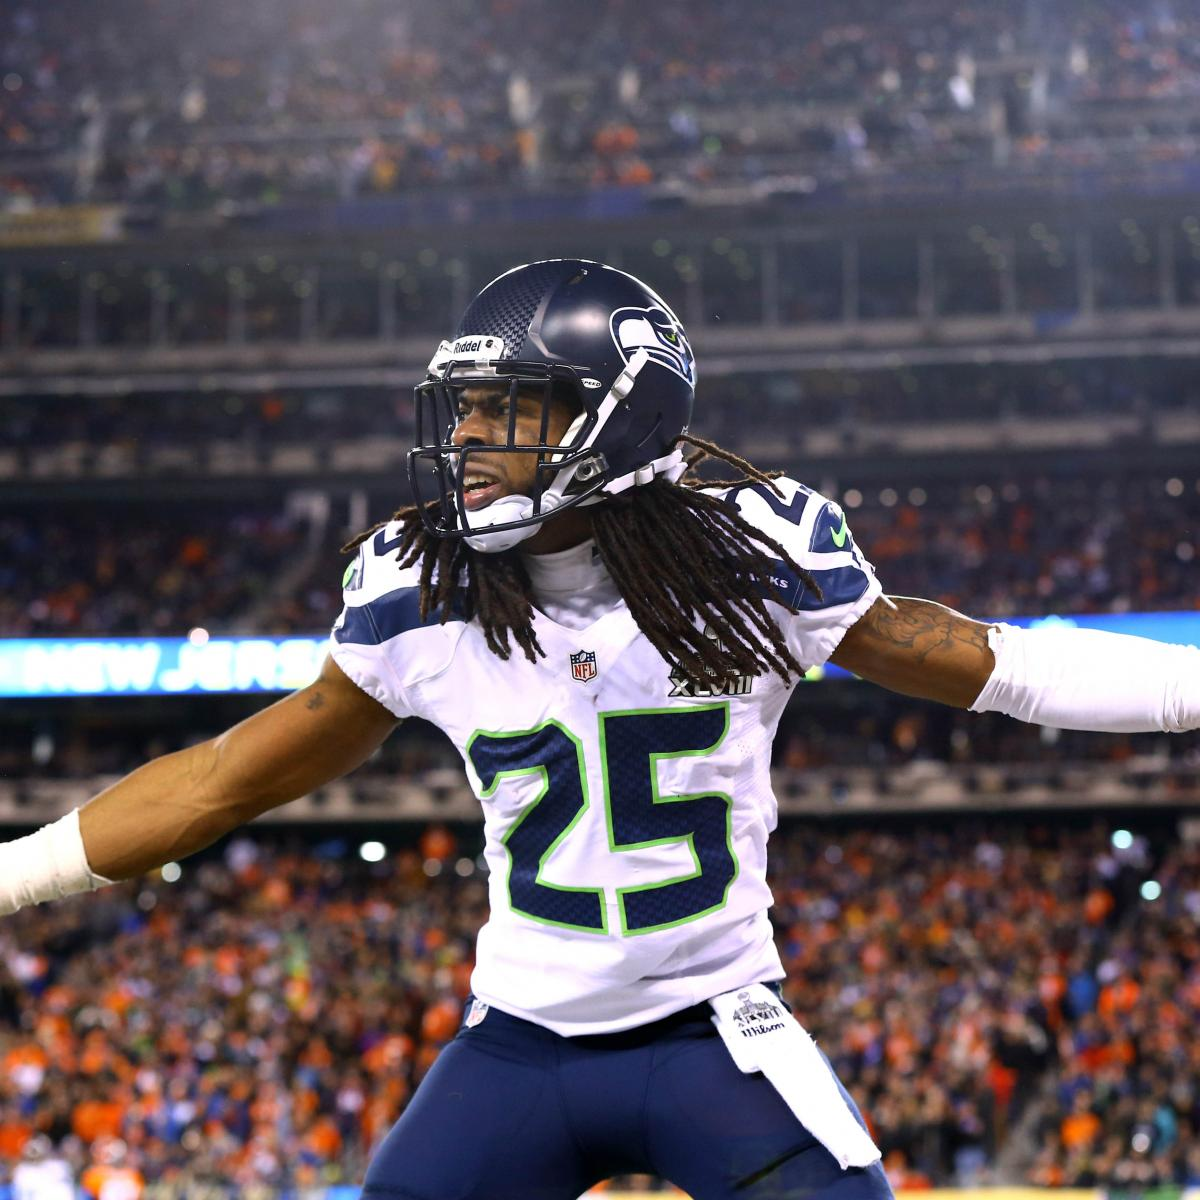 San Diego Chargers Football Score: San Diego Chargers Vs. Seattle Seahawks: Live Score And